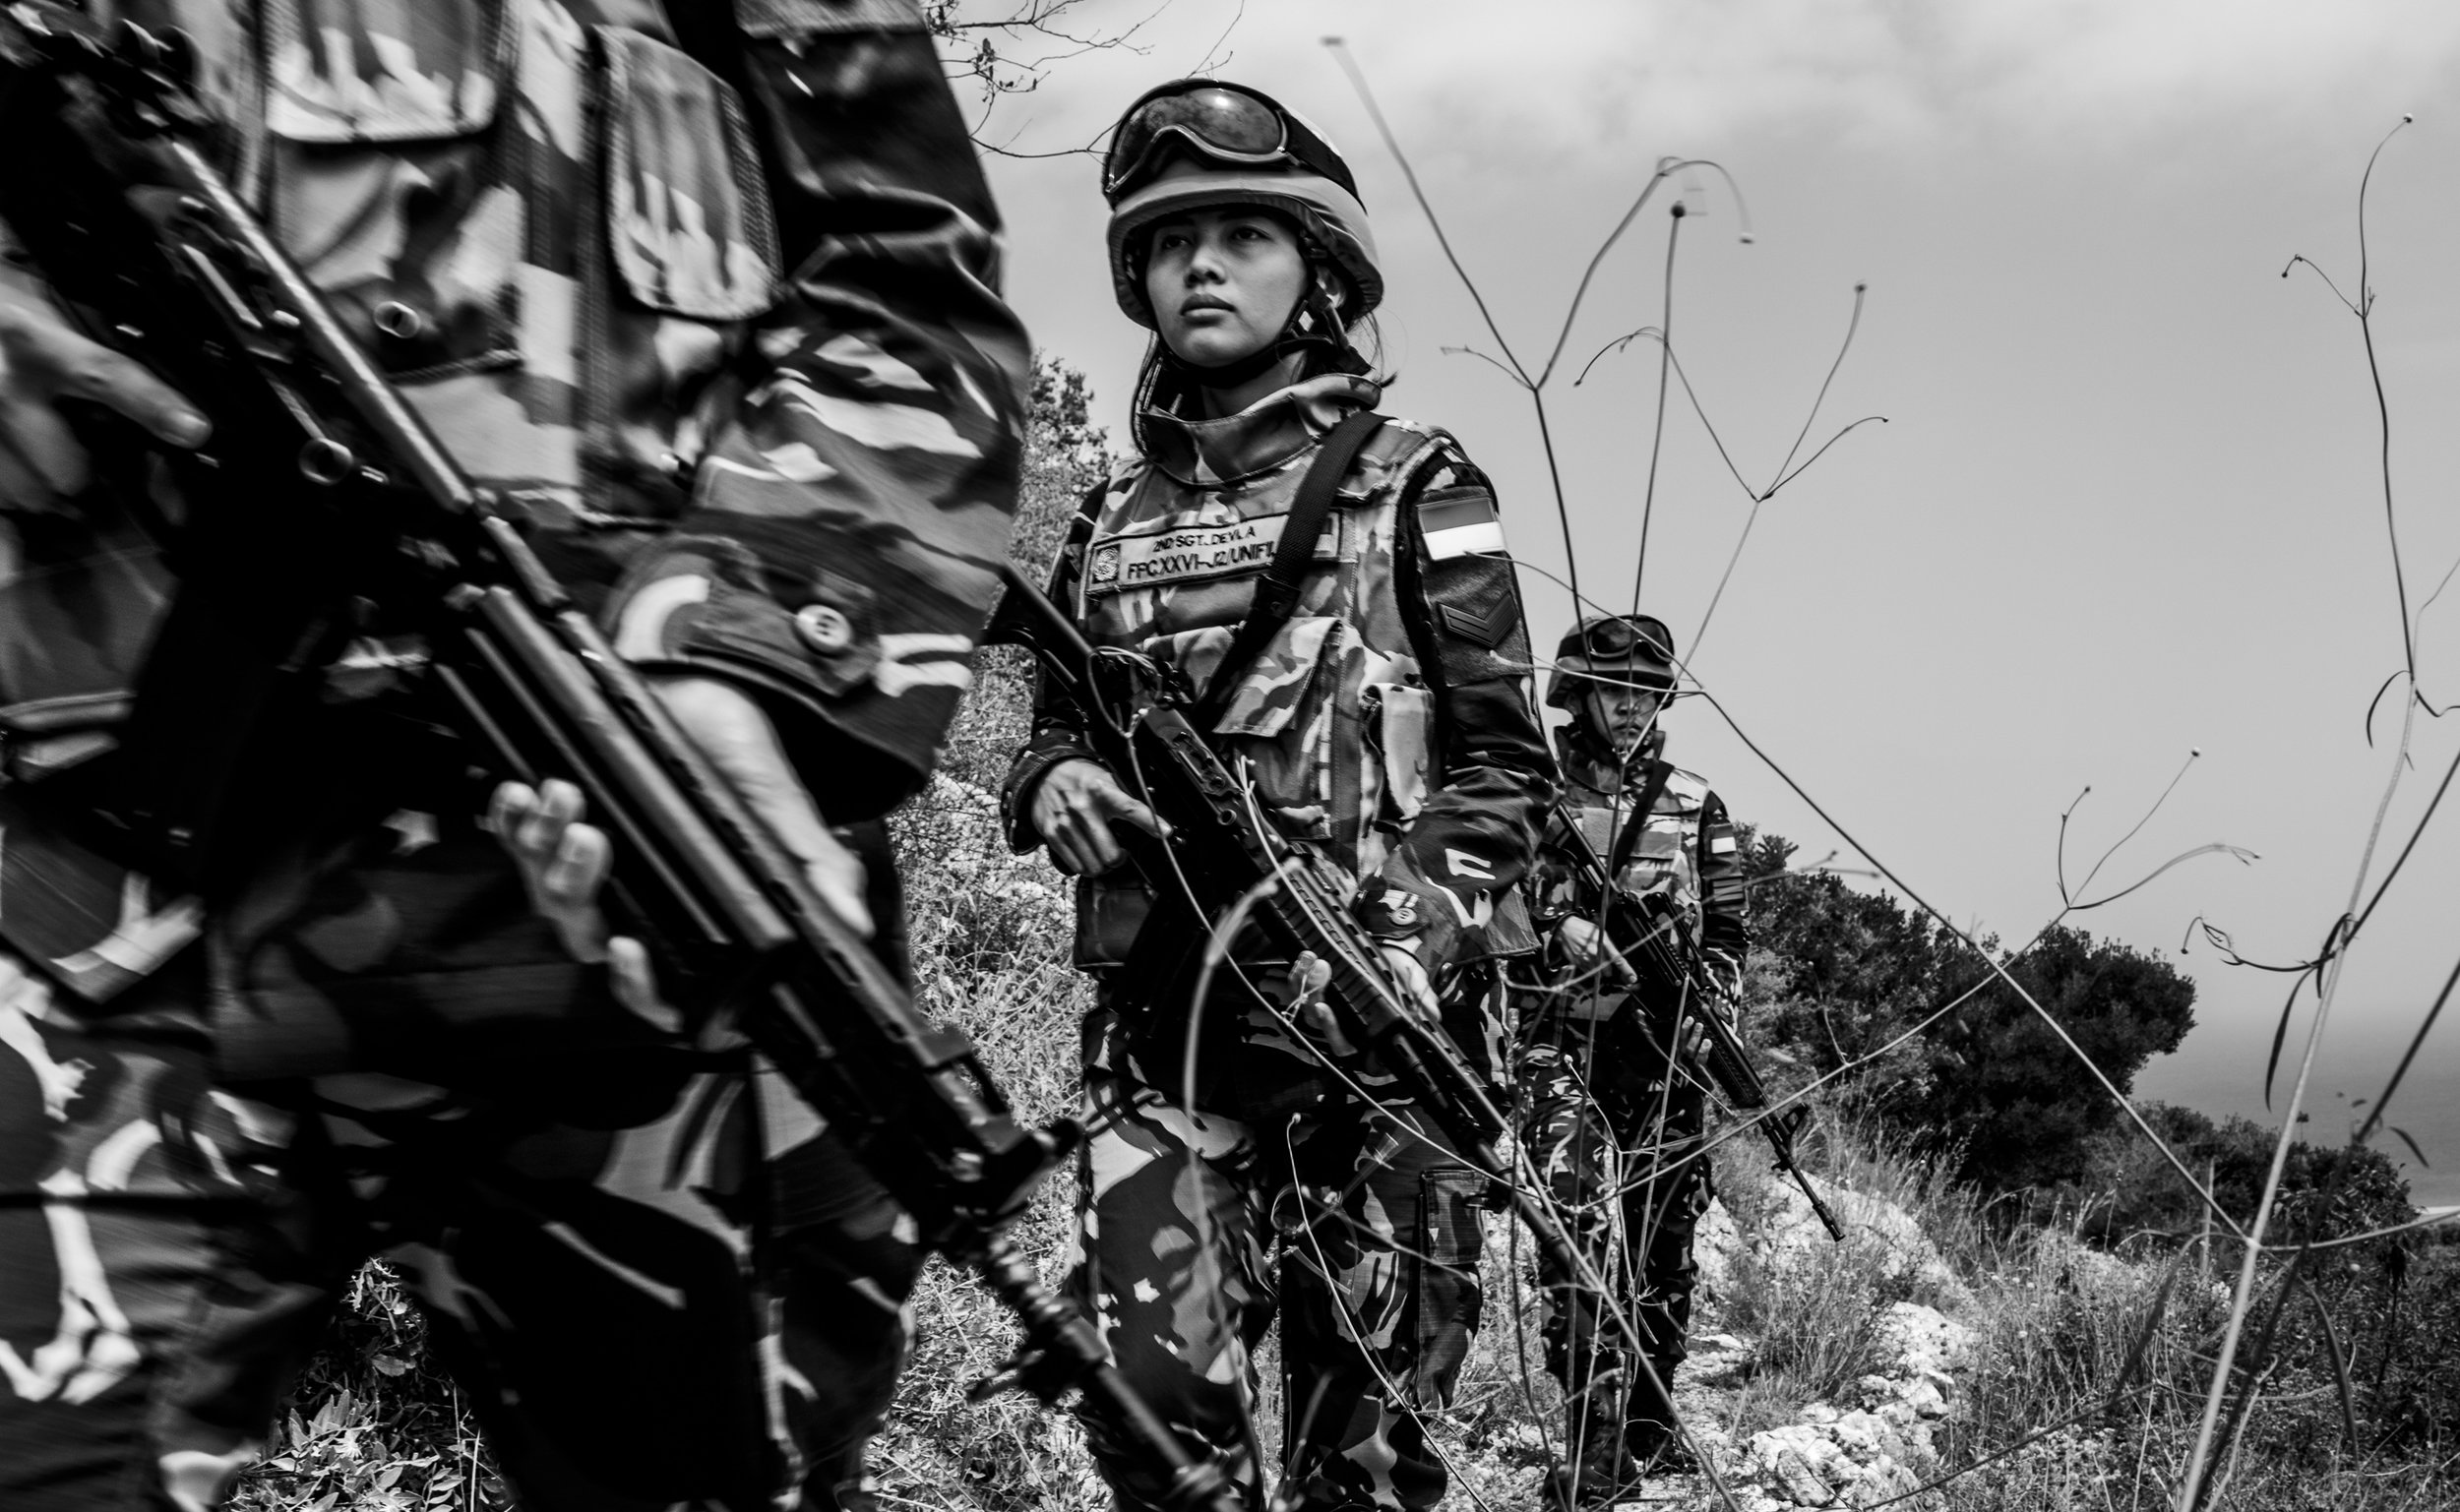 May 5, 2018, UNIFIL- Second SGT. Devla on a training for patrol inside their base camp.